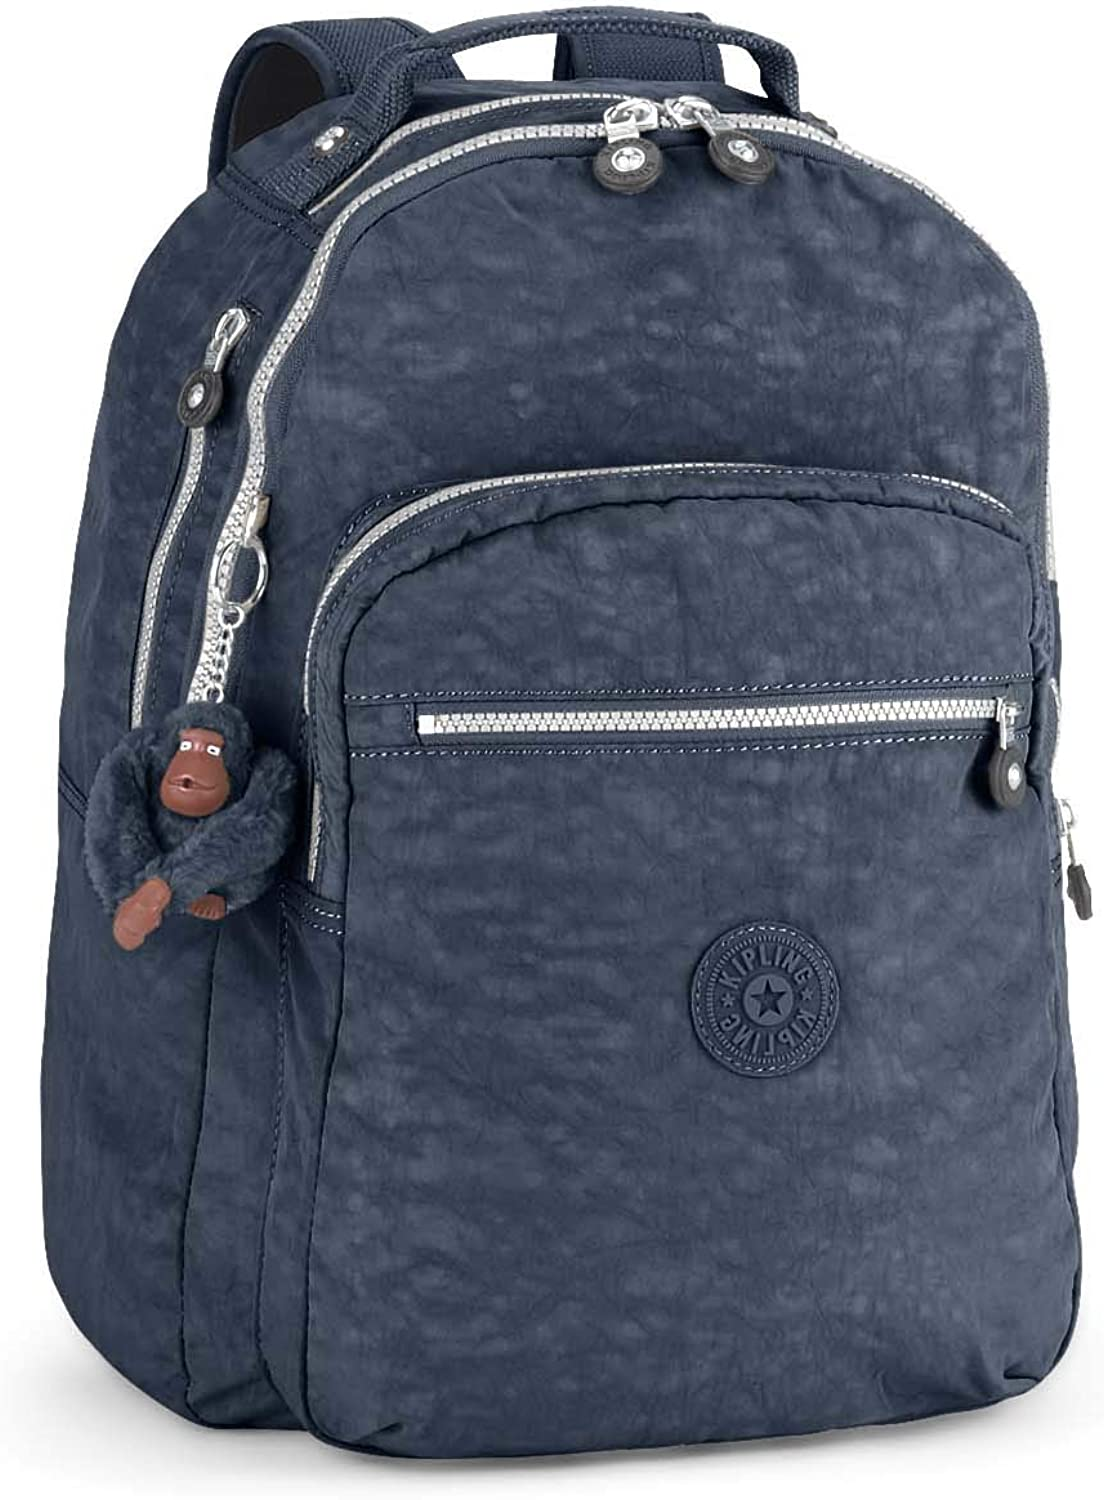 Kipling Unisex Adult's Casual Daypack Clas Seoul One Size True Blue